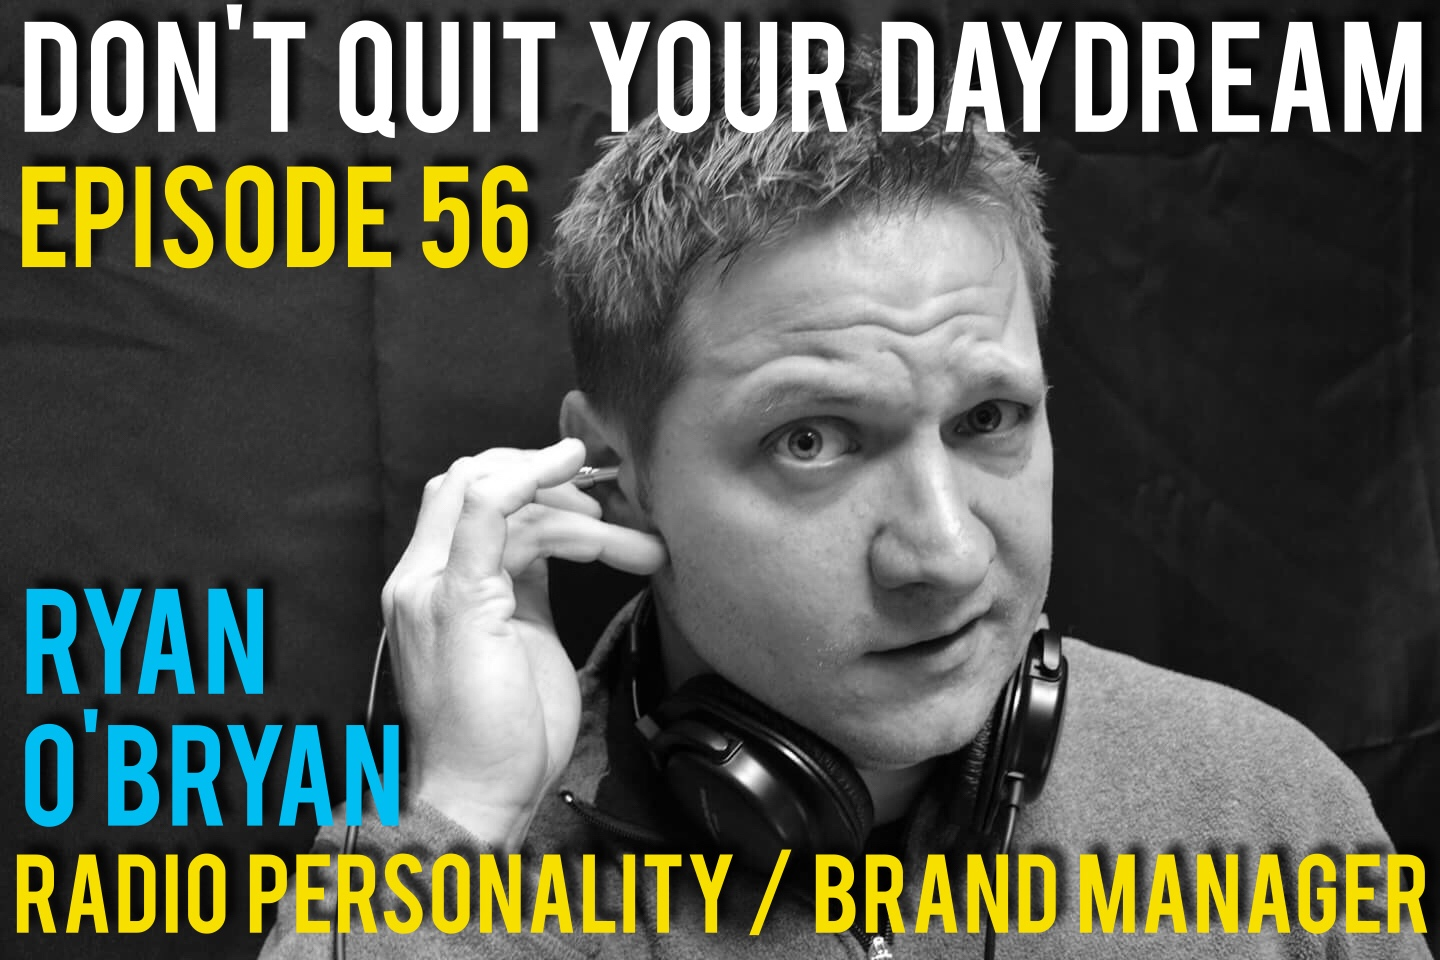 "Episode 56 of Don't Quit Your Daydream is with talented Radio DJ and Kiss 106.1 Brand Manager: Ryan O'Bryan. Full of fantastic stories and wonderful advice in regards to the world of radio, Ryan has spent over a decade behind the microphone. We discuss the ever evolving medium, what makes a good DJ stand out, the worst thing he's ever said ""on air"" and making the most out of an opportunity.  Song of the week is ""Ember"" from Jason Lee McKinney. His upcoming Triple EP ""Sacred Southern Soul"" releases on 04/22. Check it out  https://www.jasonleemckinneyband.com/"